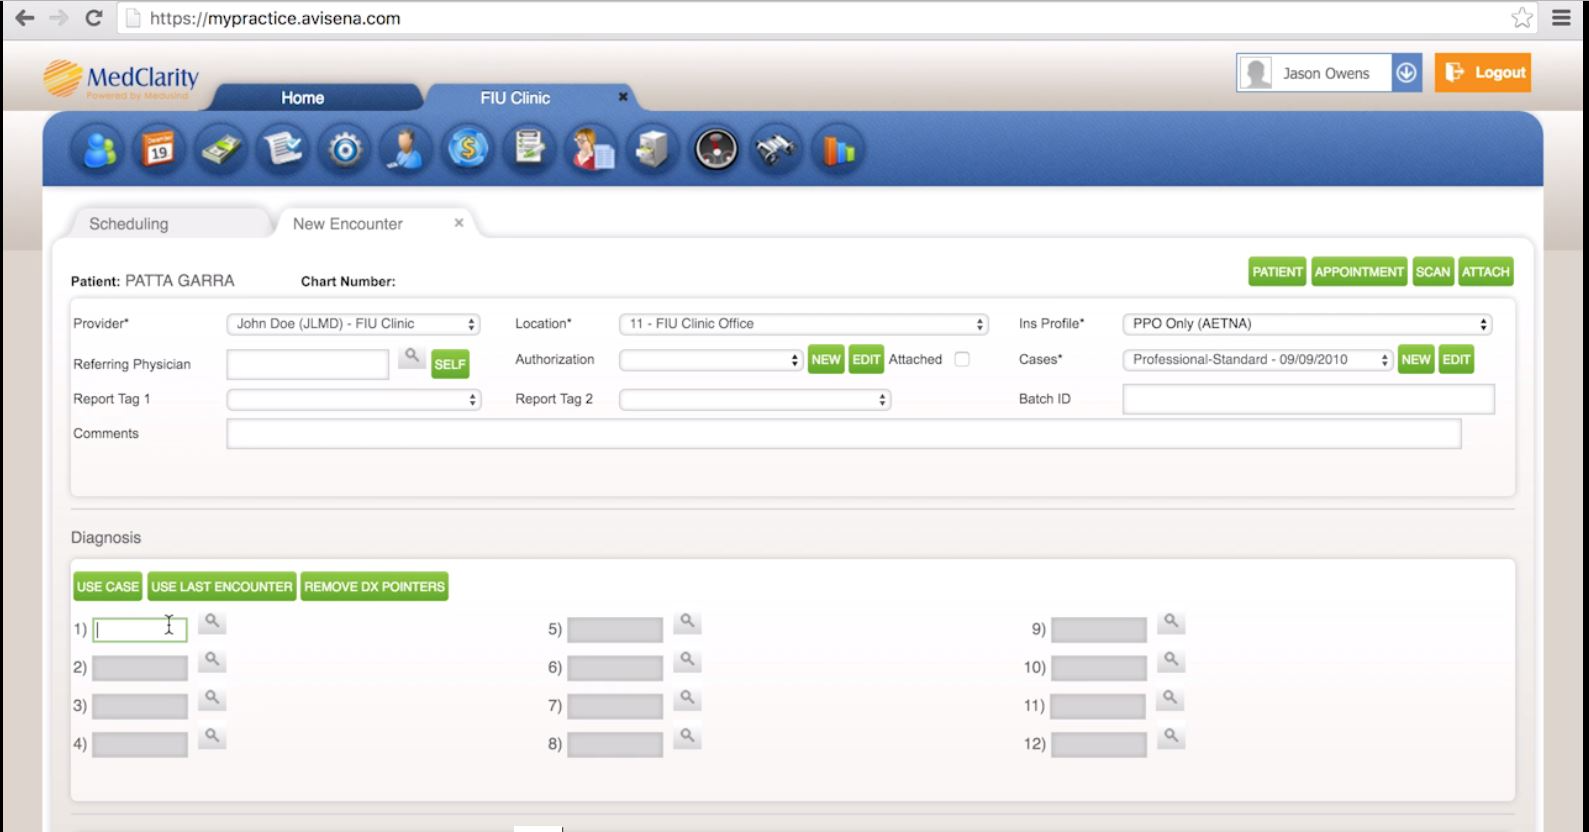 The tool enables users manage patient schedules